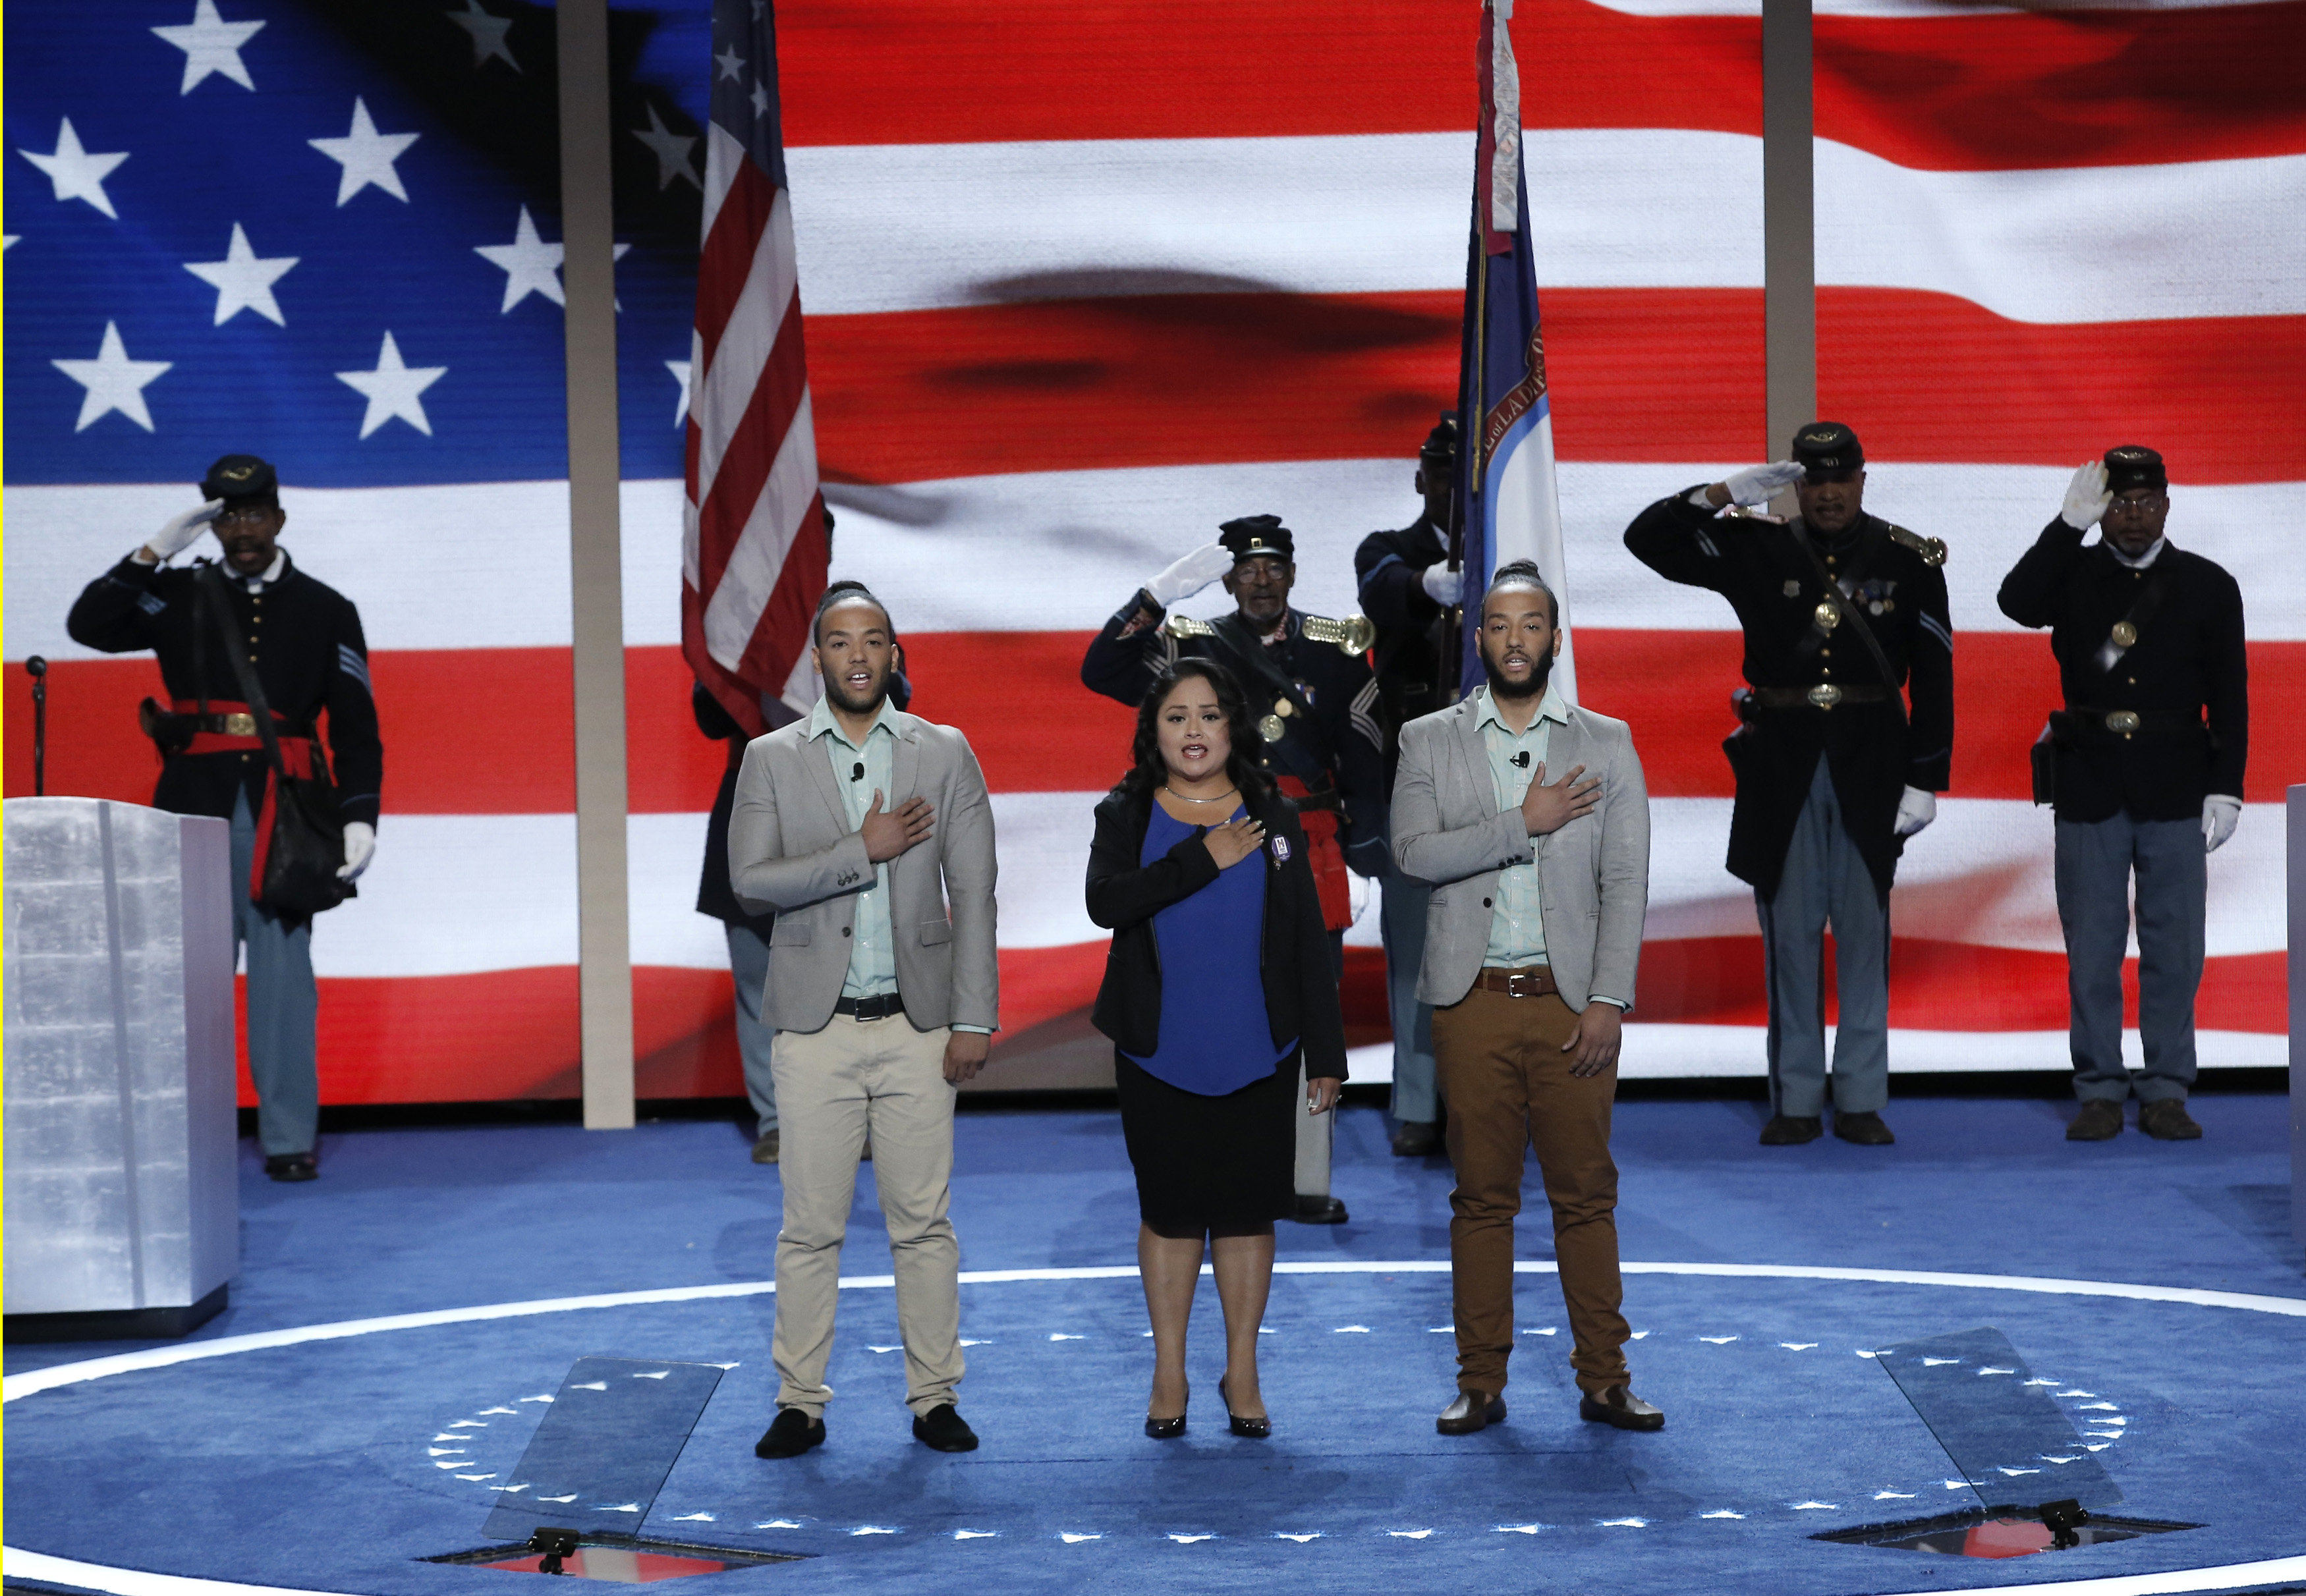 Newly naturalized U.S. citizens lead the U.S. Pledge of Allegiance at the start of the final day of the Democratic National Convention in Philadelphia, Pennsylvania, July 28, 2016.